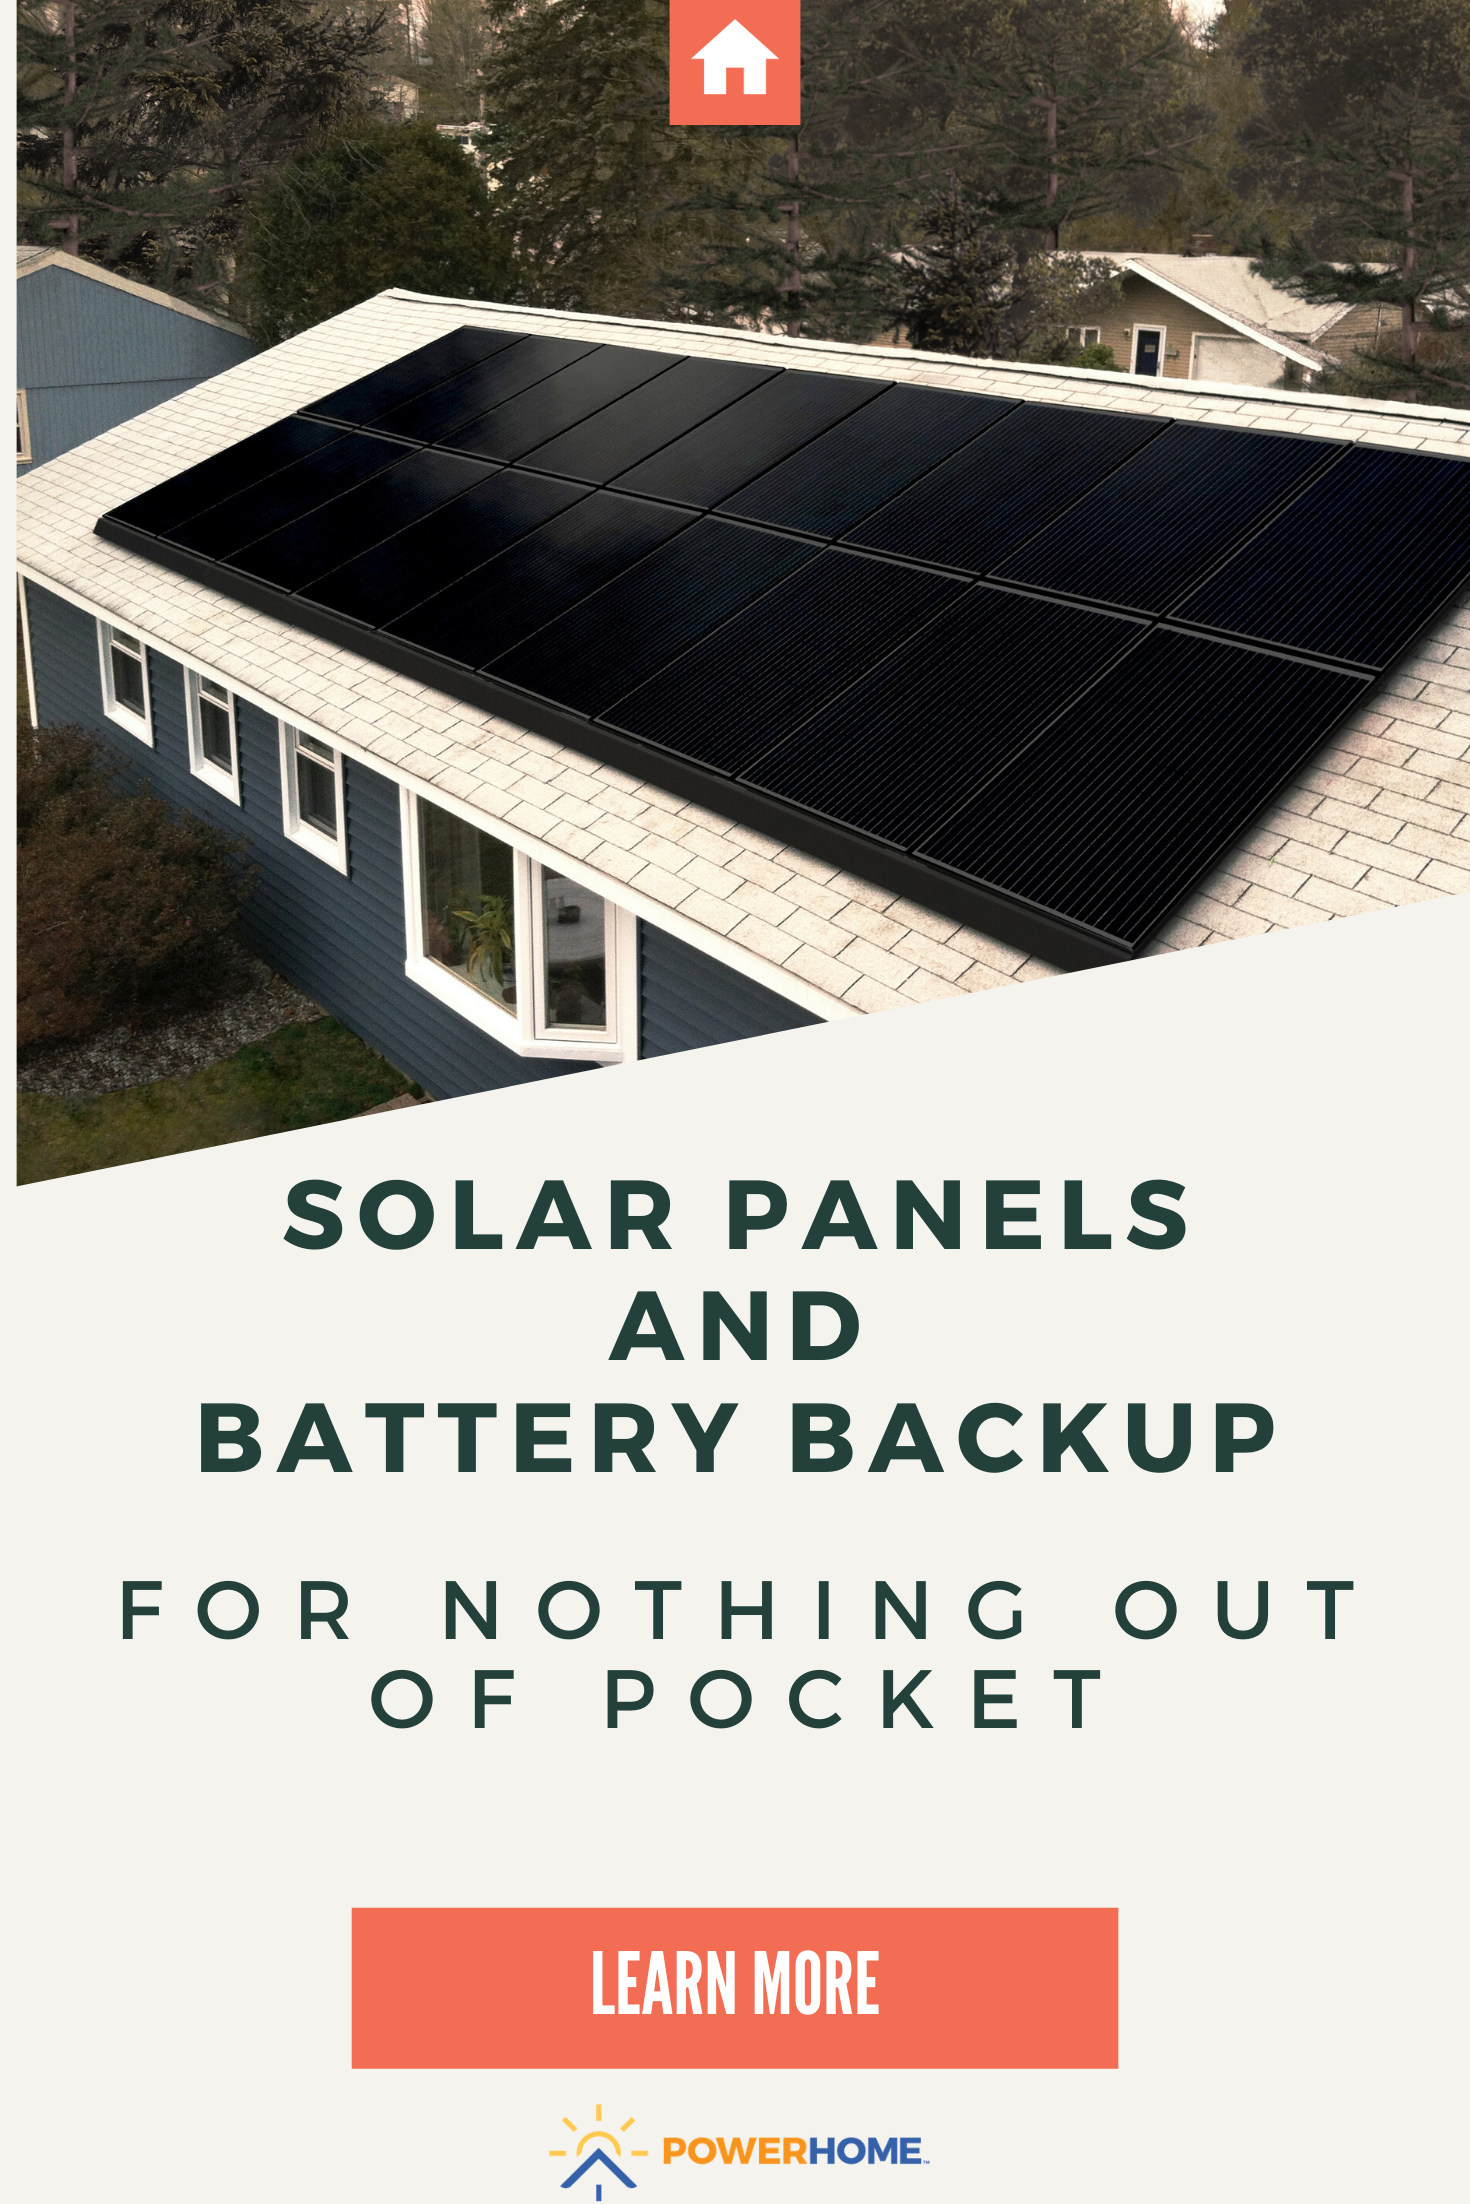 Get Solar Panels And Battery Backup For 0 Out Of Pocket In 2020 Solar Panels Solar Panels For Home Solar